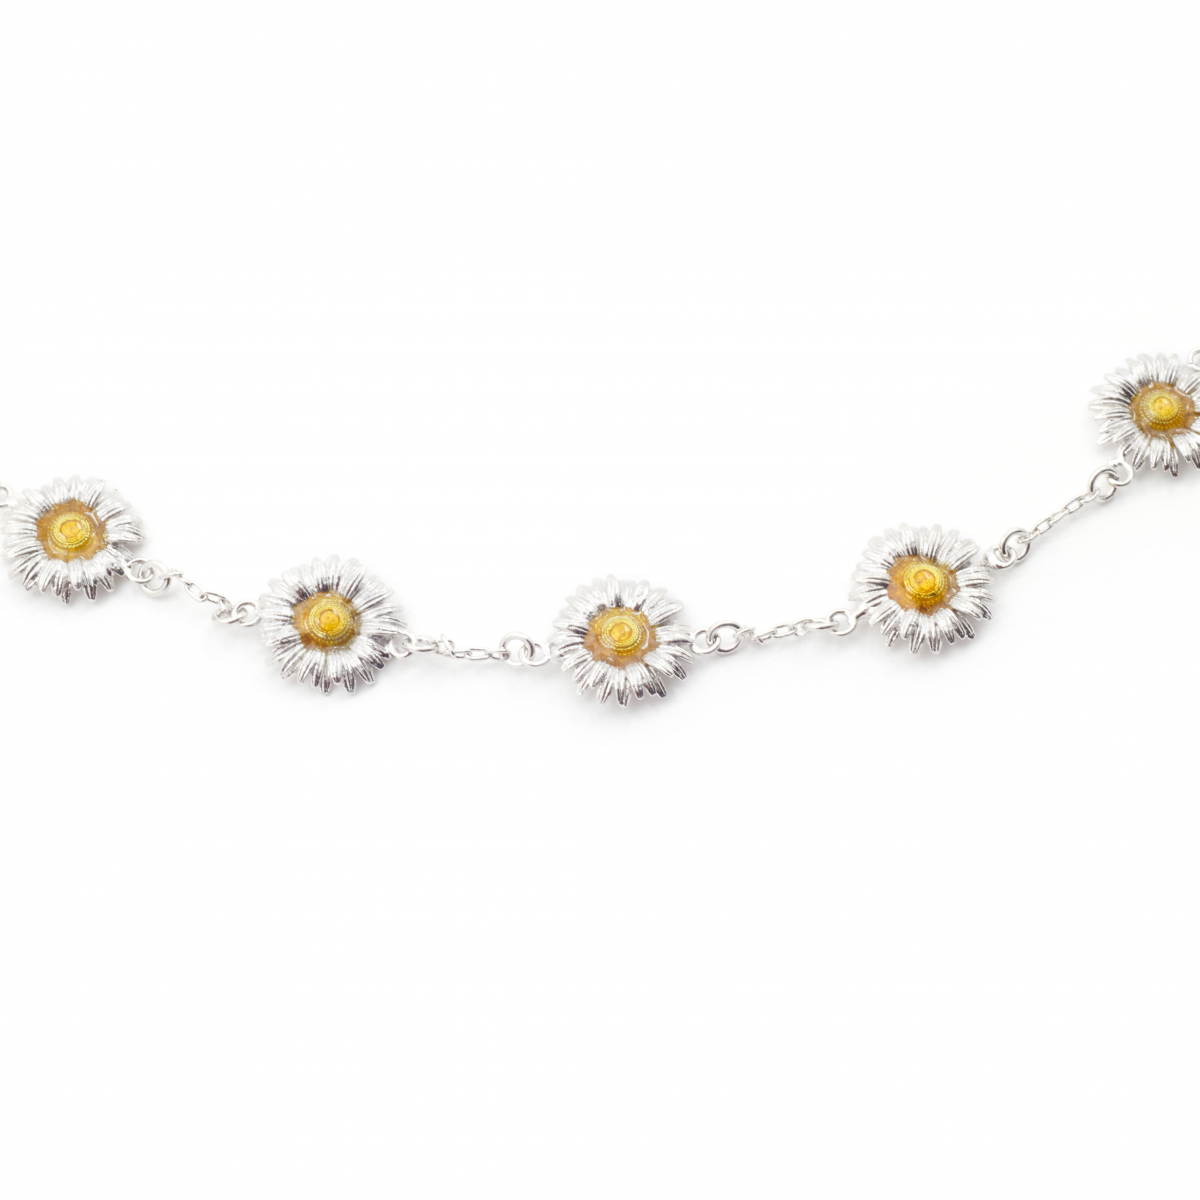 Daisy Chain Necklace - Rhodium